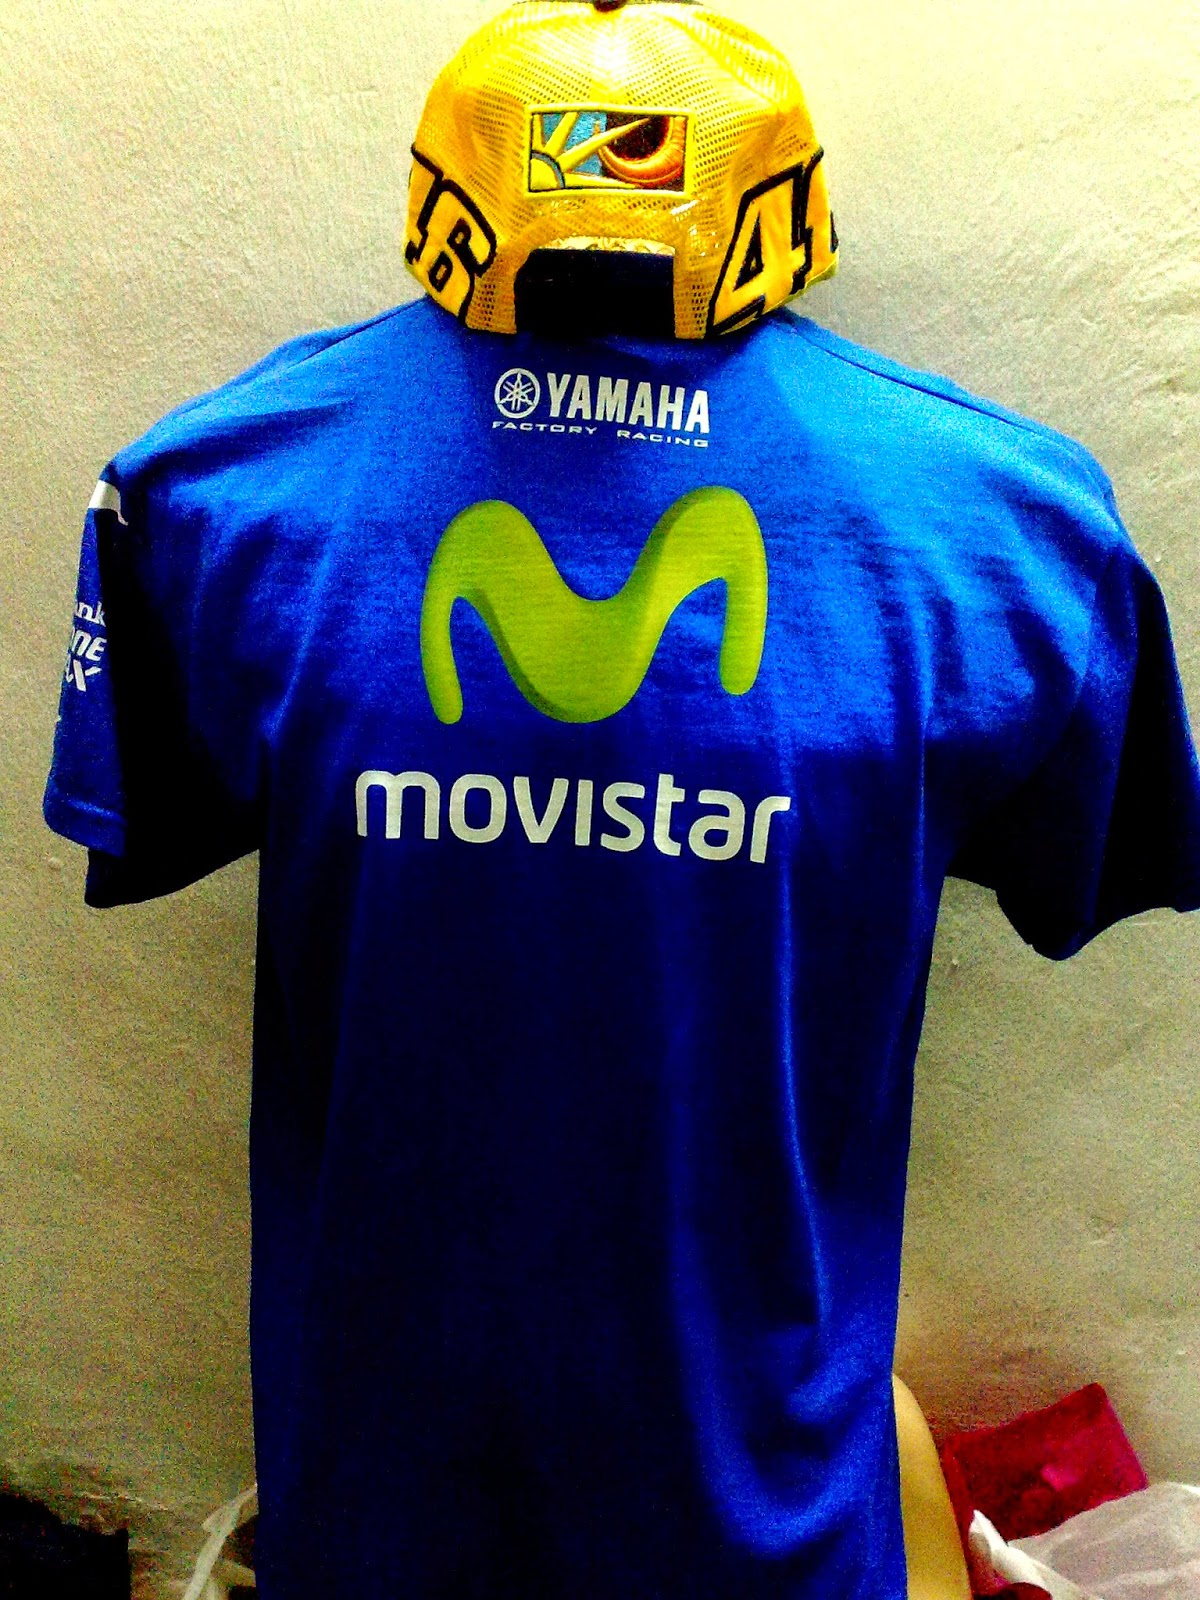 movistar yamaha t shirt 2014. Black Bedroom Furniture Sets. Home Design Ideas